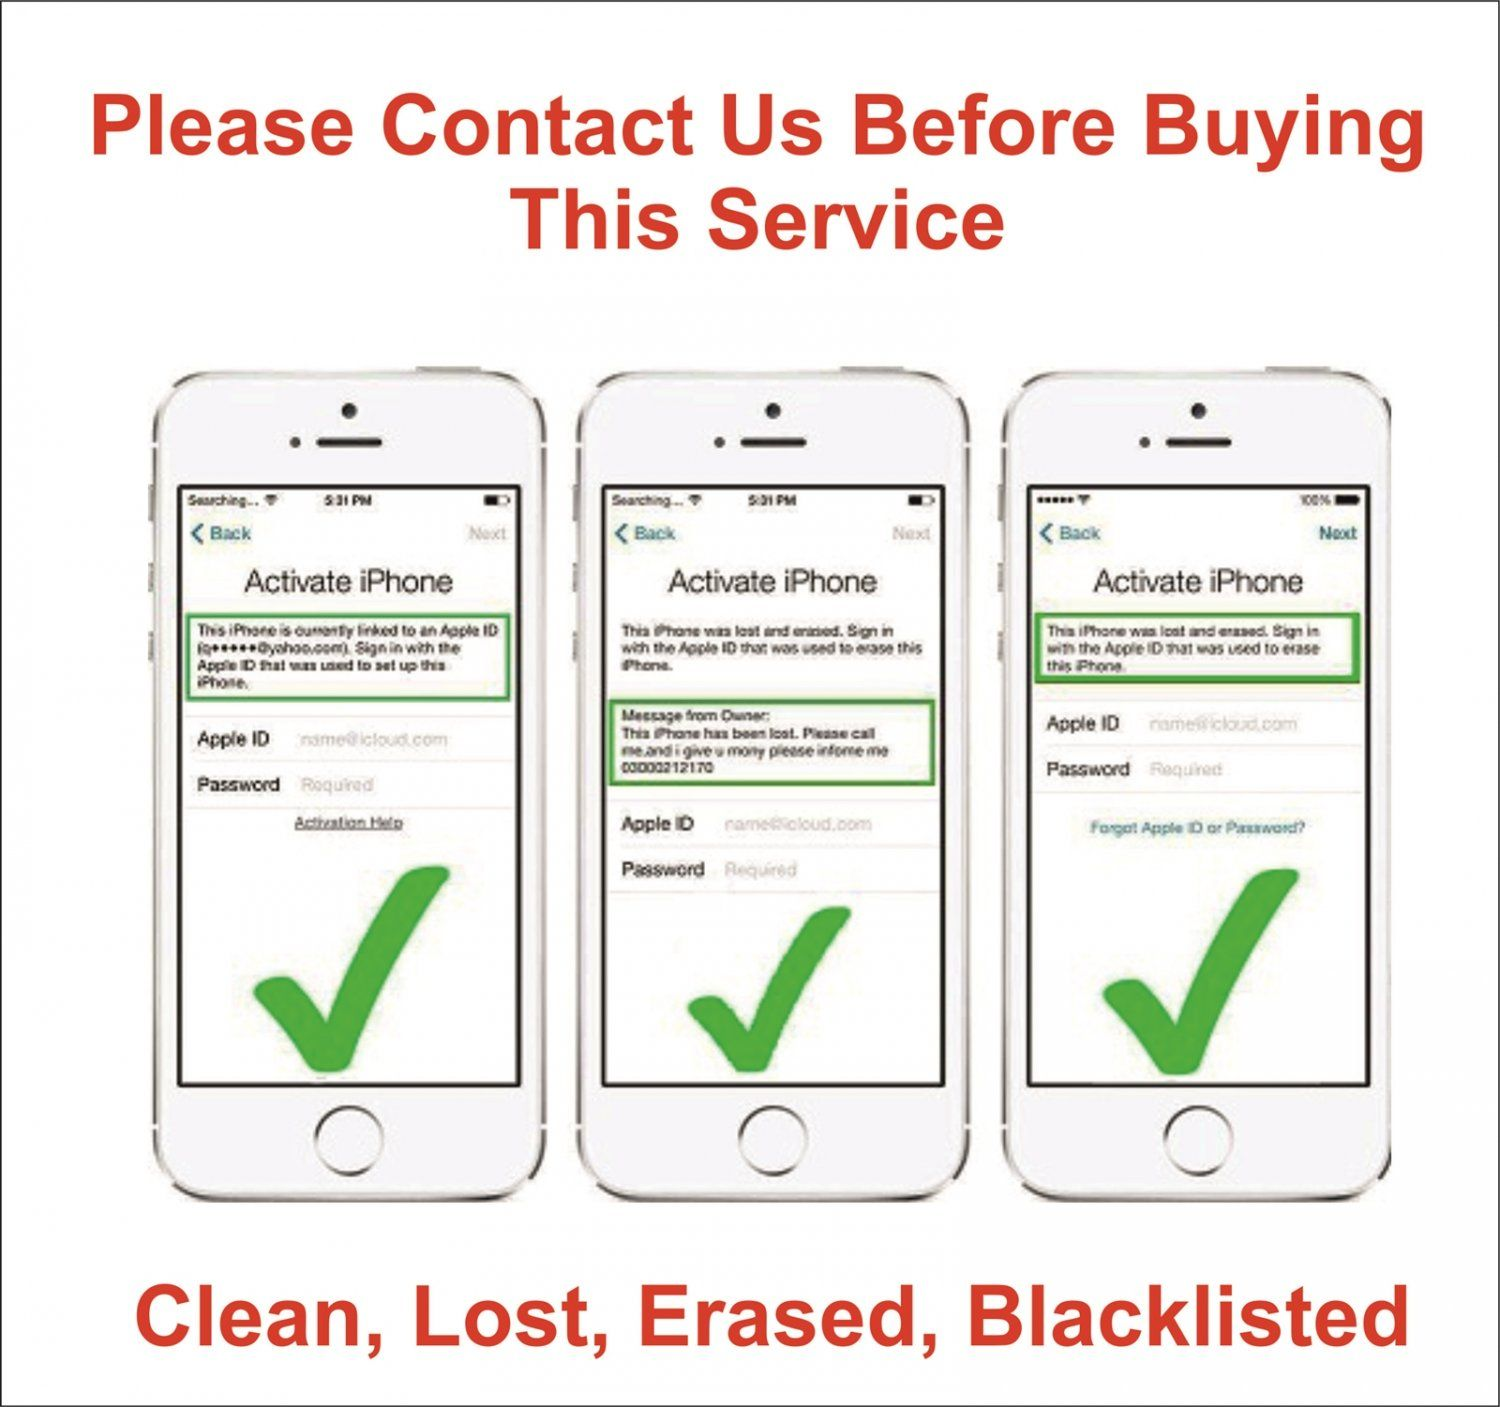 Icloud+Unlock+/+Removal+service +Clean,+Lost,+Erased,+Blacklisted